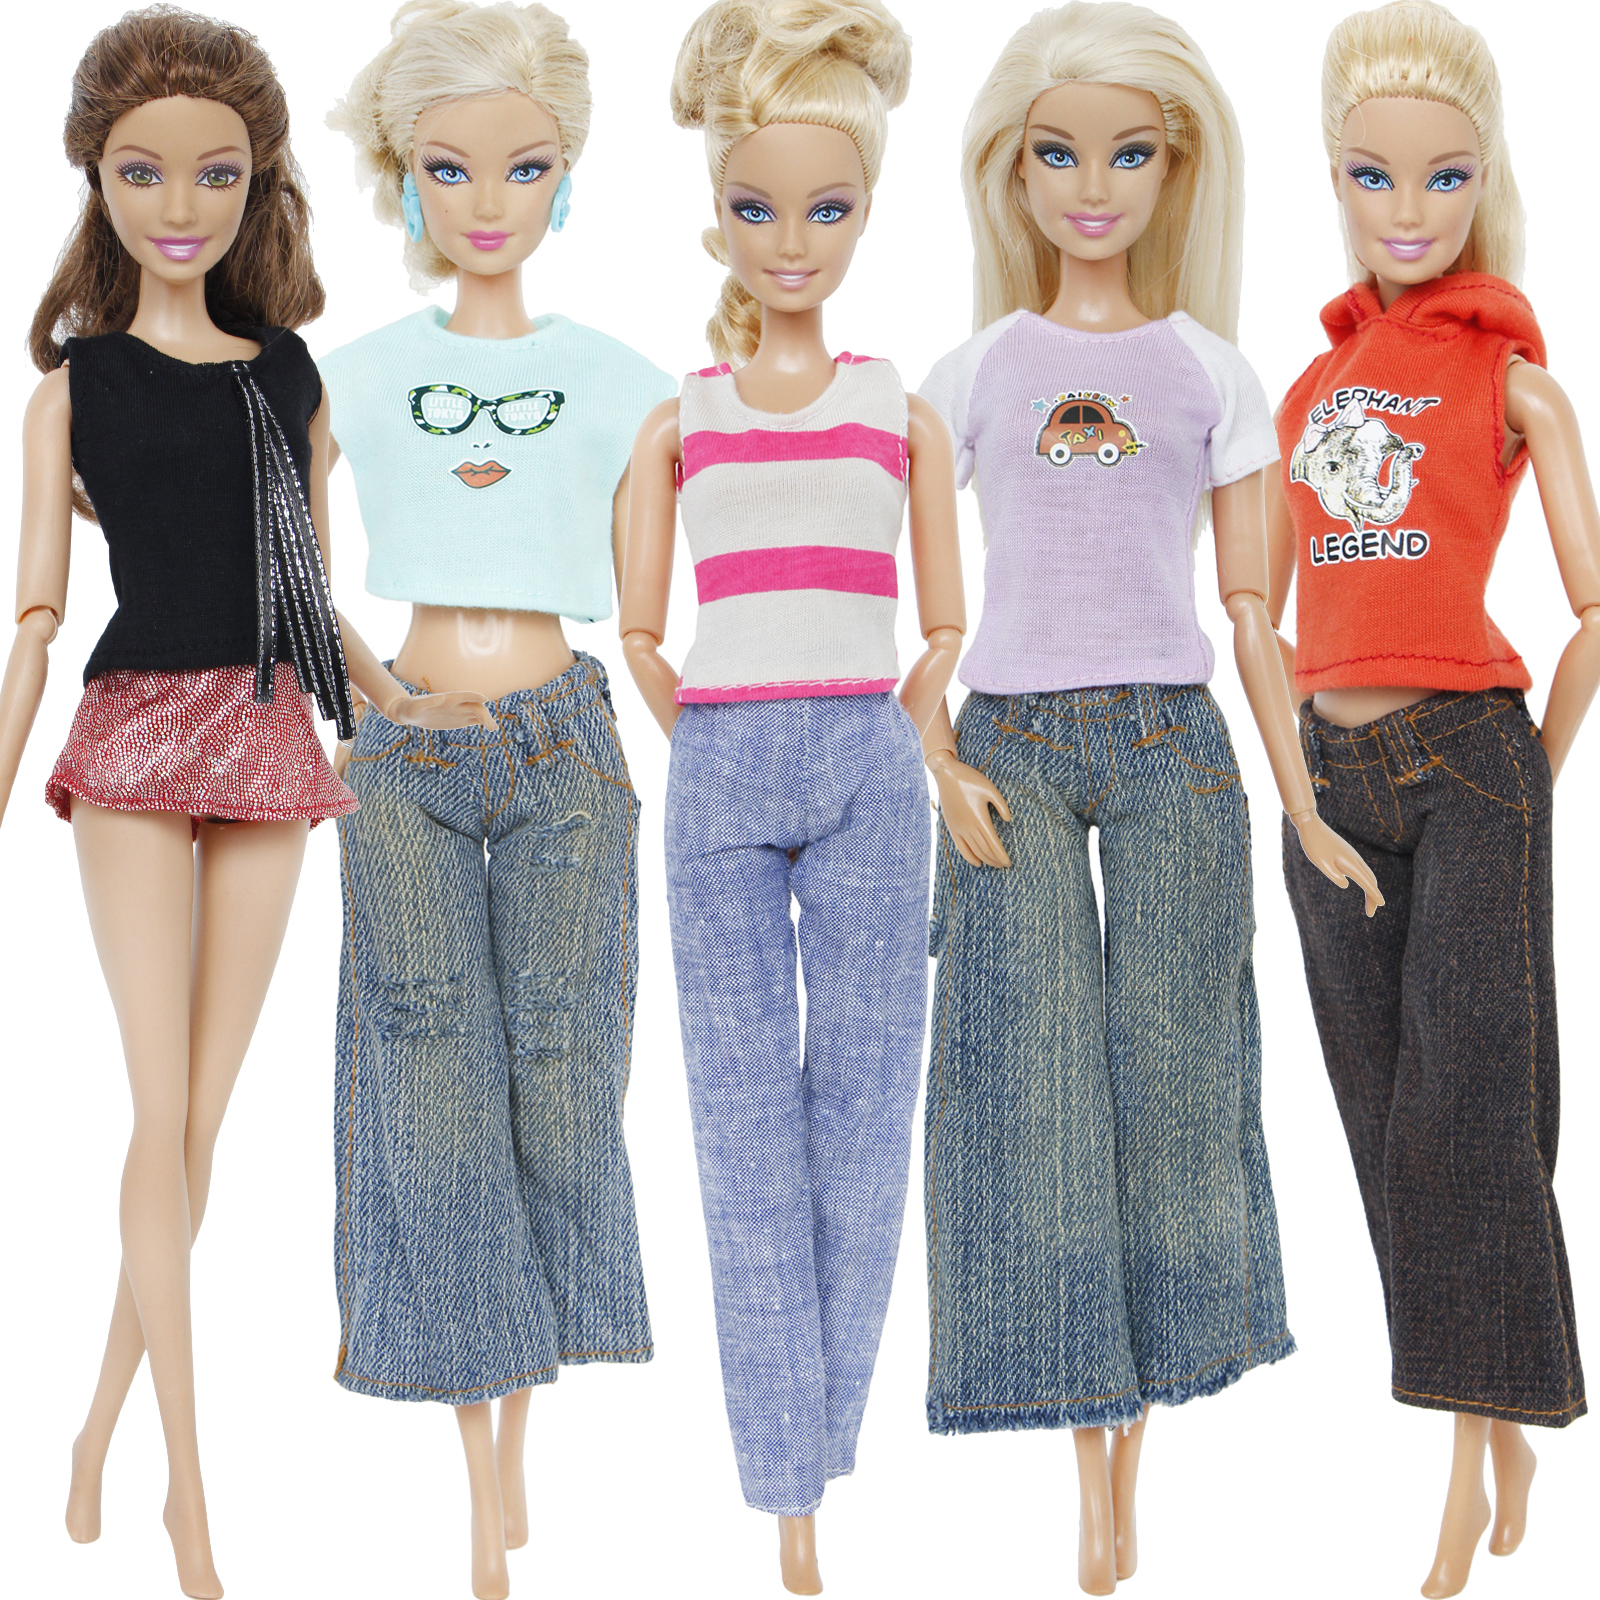 One Set Casual Outfit Mixed Style Daily Wear Blouse T-shirt Trousers Skirt Jeans Dress Accessories Clothes For Barbie Doll Toy